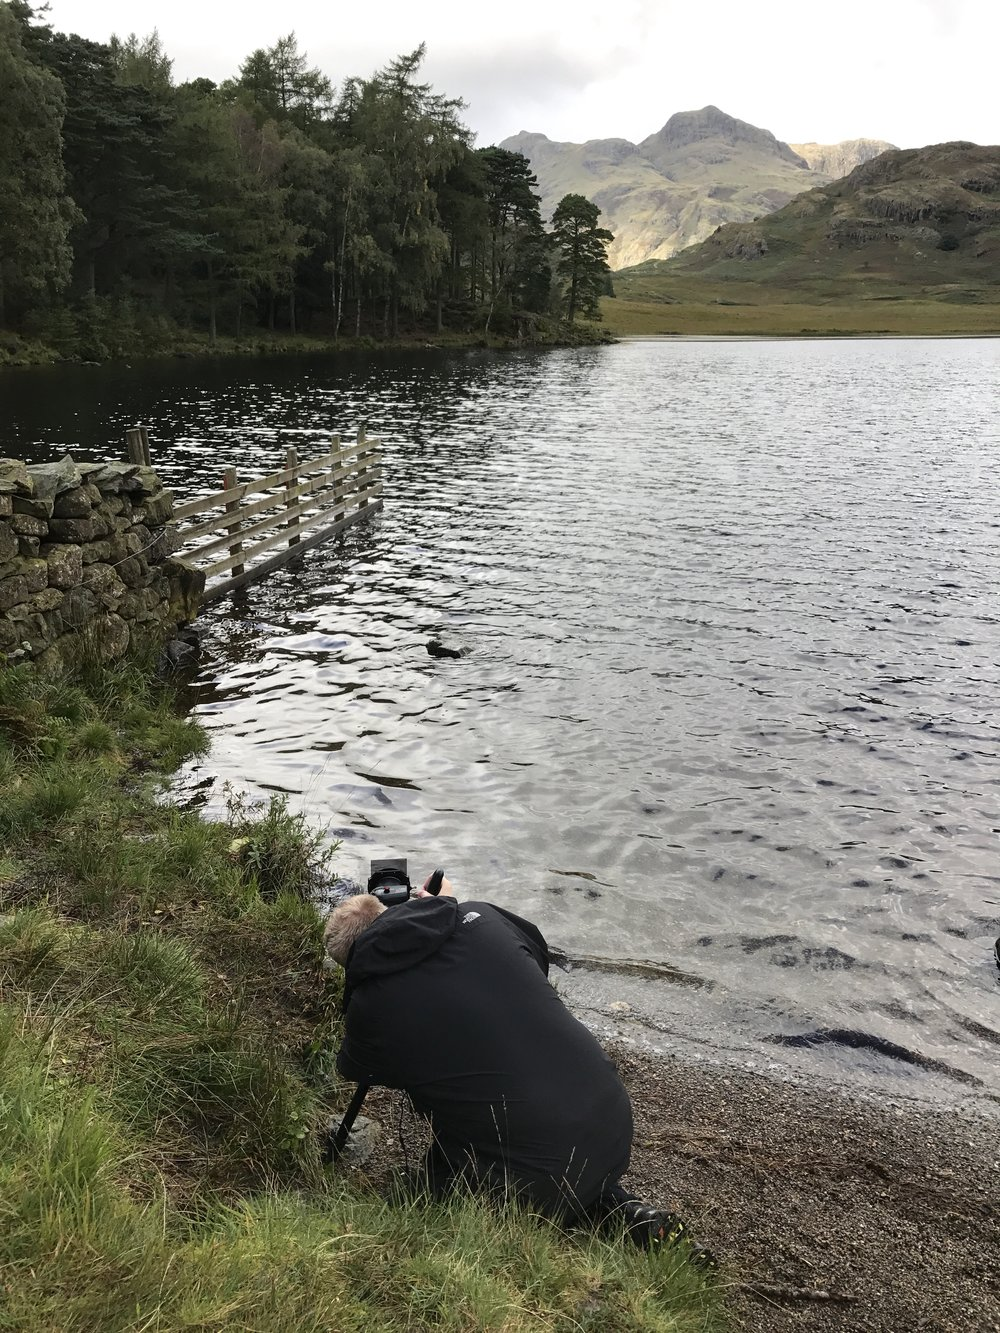 Chris getting down to it by 'that fence' by Blea tarn